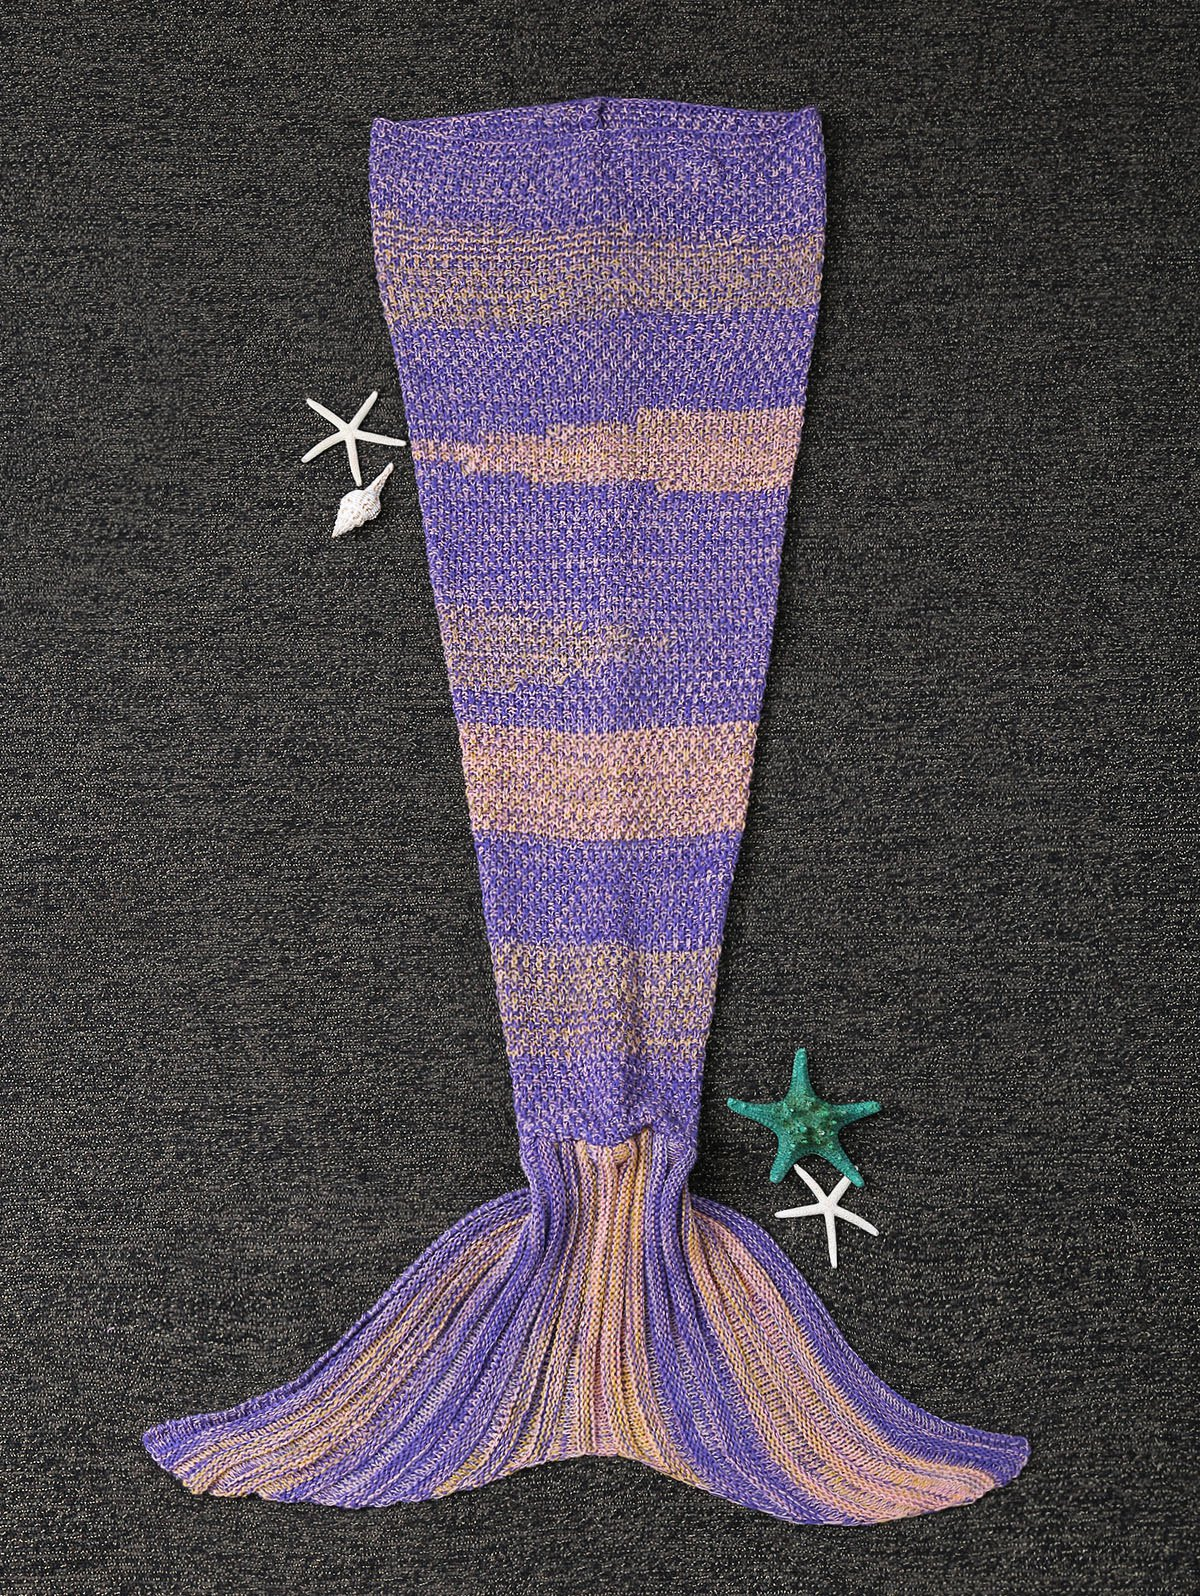 Stylish Stripe Knitted Mermaid Tail Design Blanket For Kids cute argyle cut out knitted mermaid blanket for children